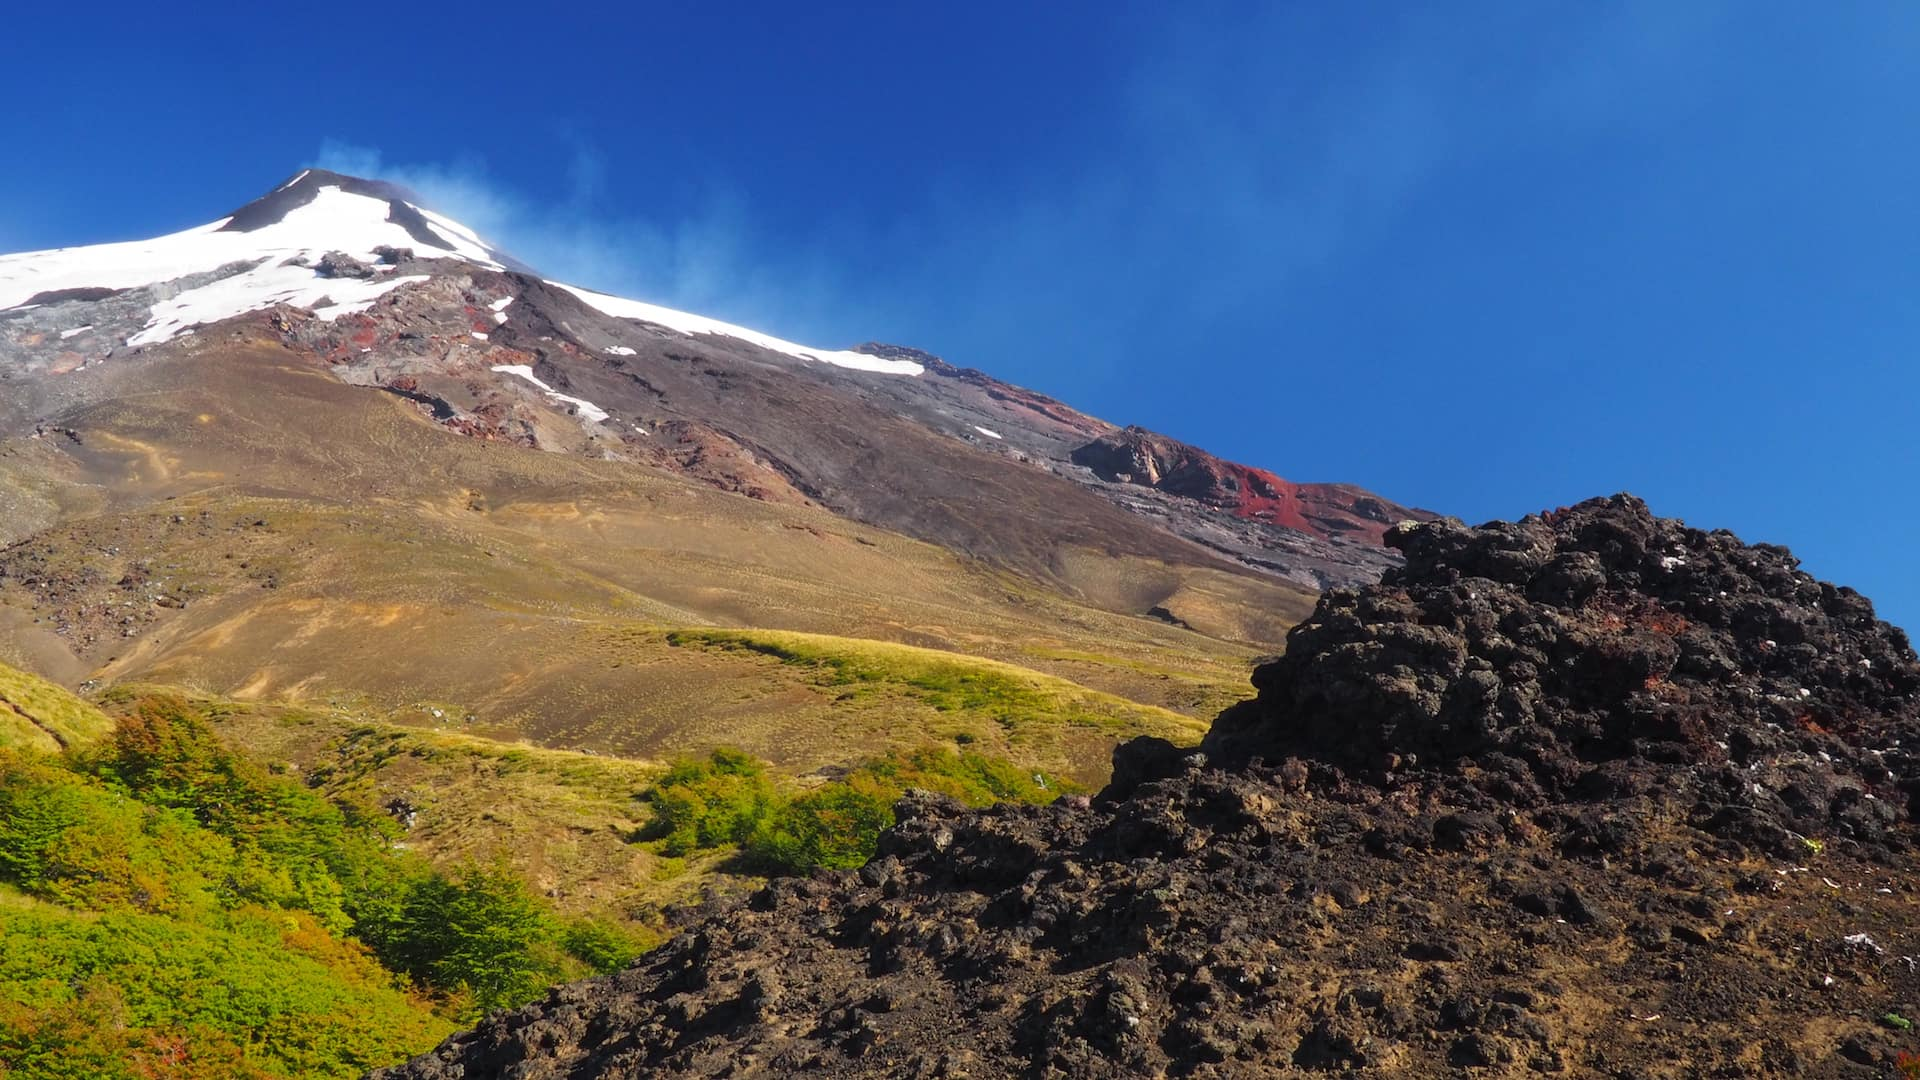 View of Volcan Villarica from the lava field